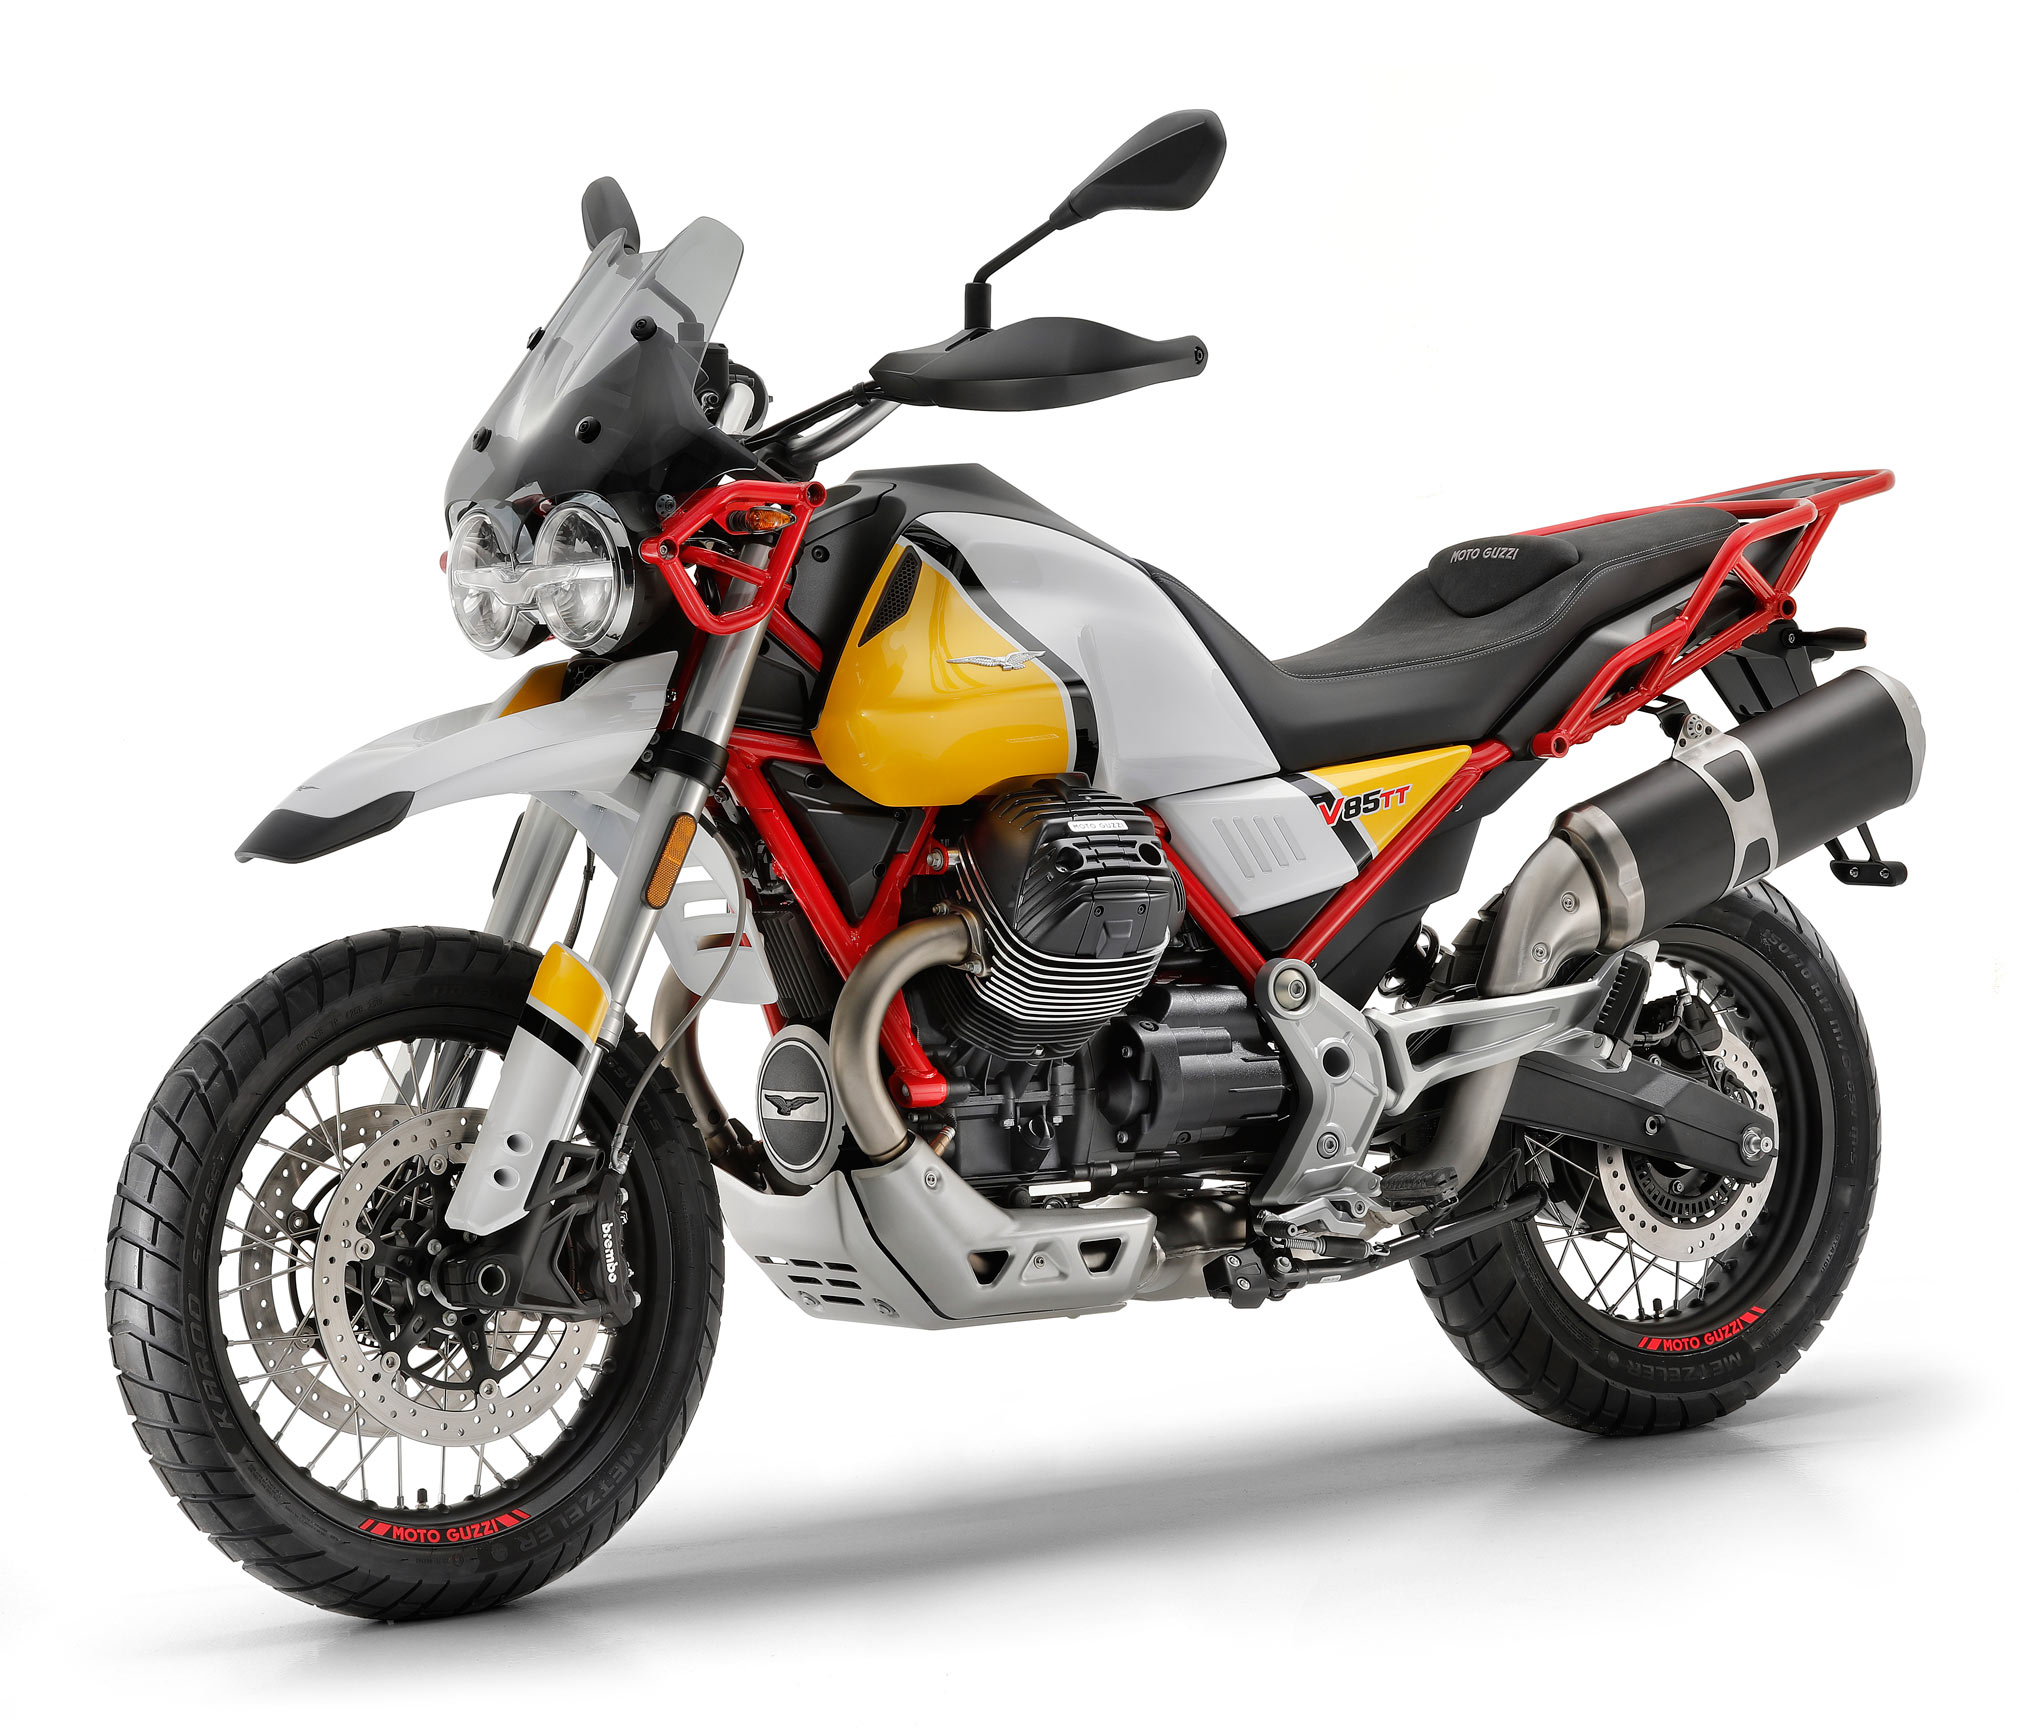 2019 Moto Guzzi V85 TT Guide • TotalMotorcycle